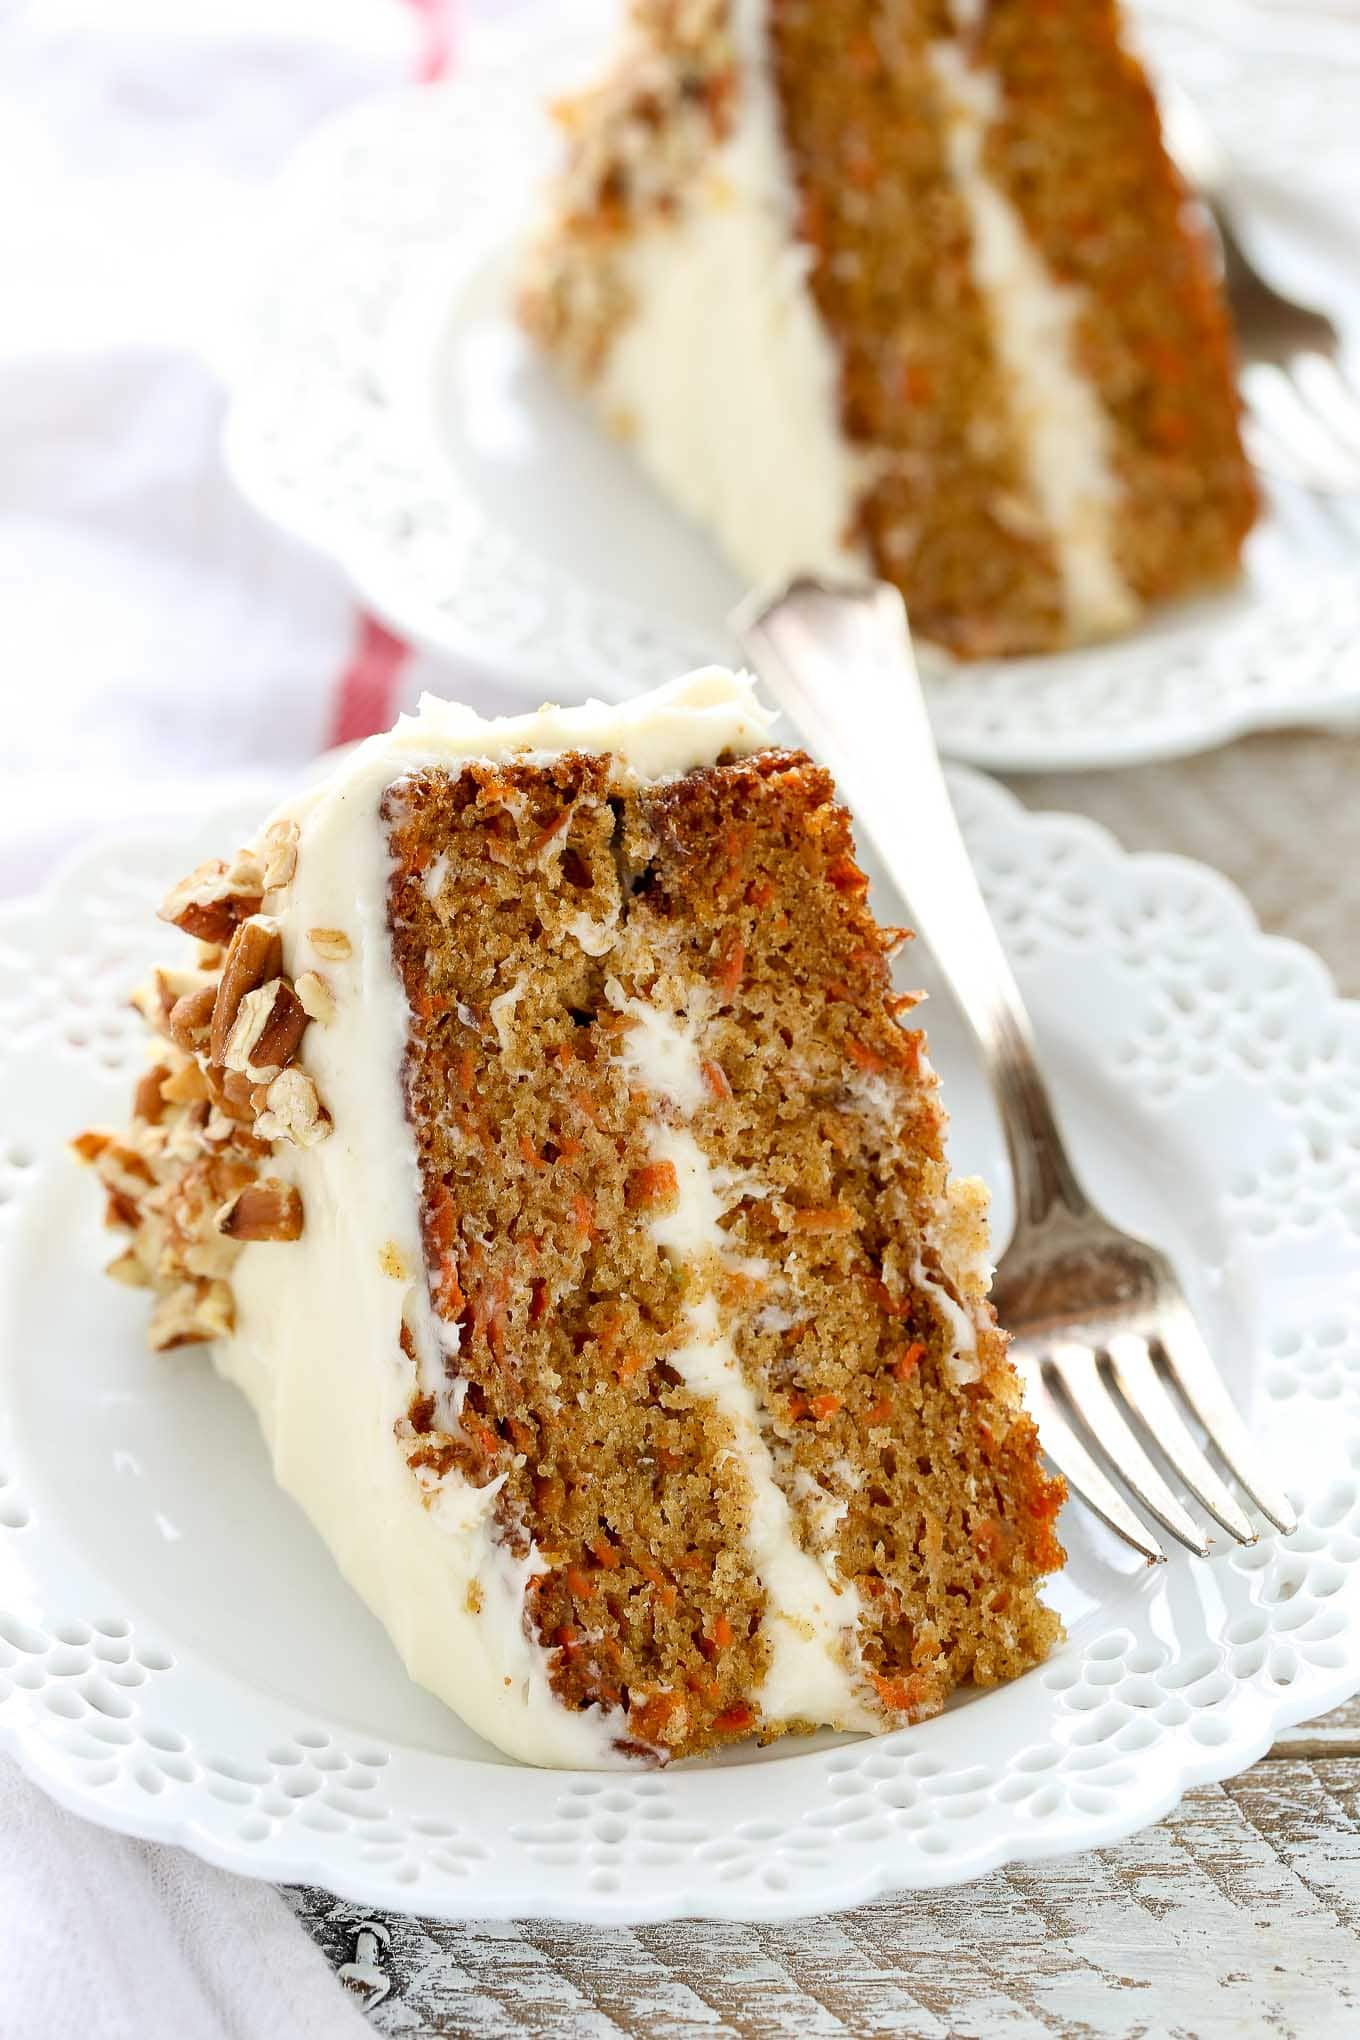 How to cook a delicious cake 12